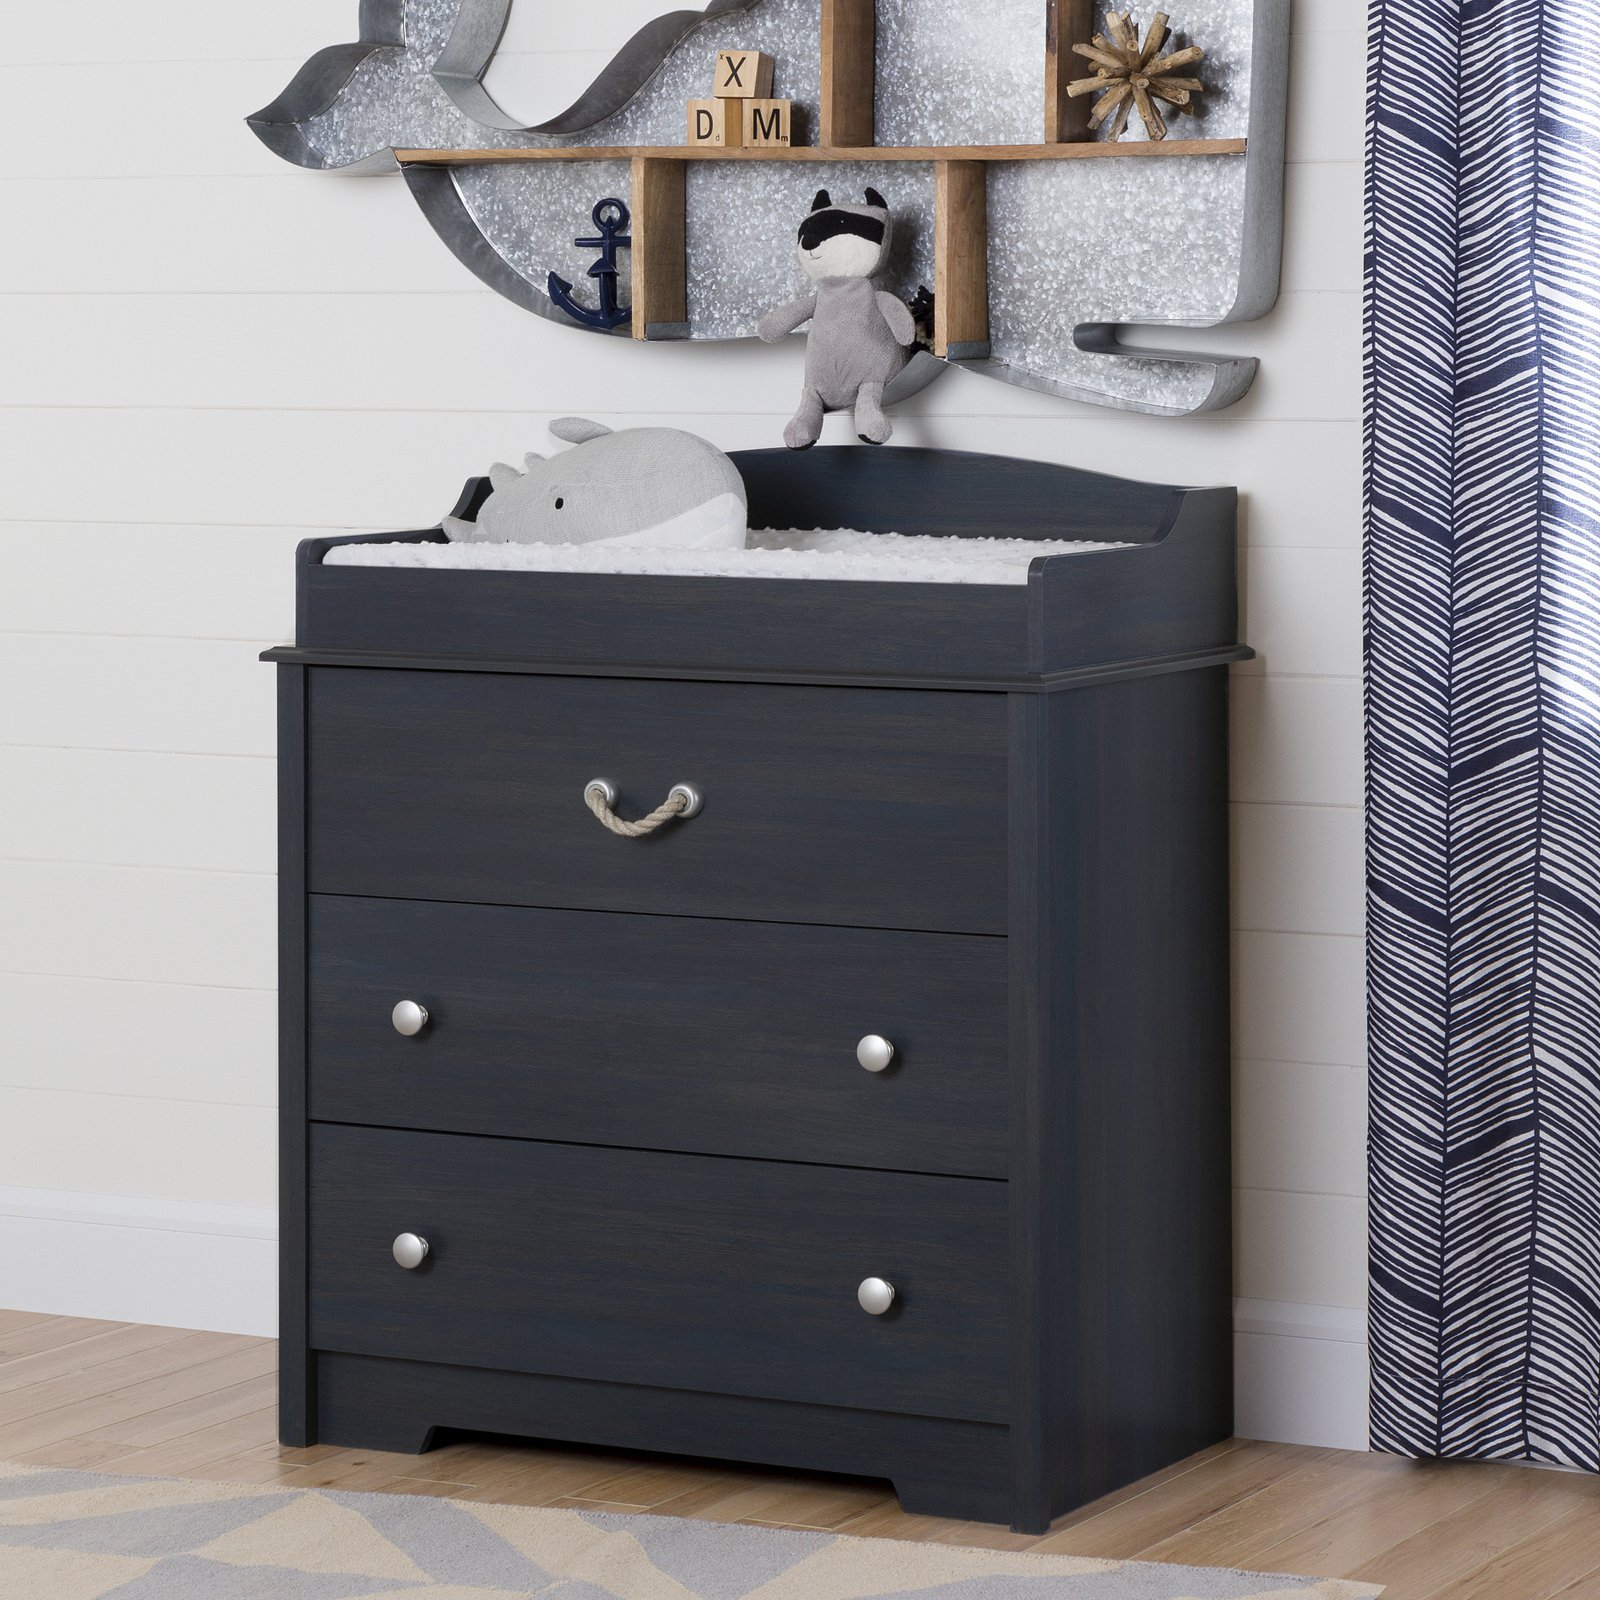 South Shore Aviron Changing Table with Drawers, Blueberry by South Shore Furniture